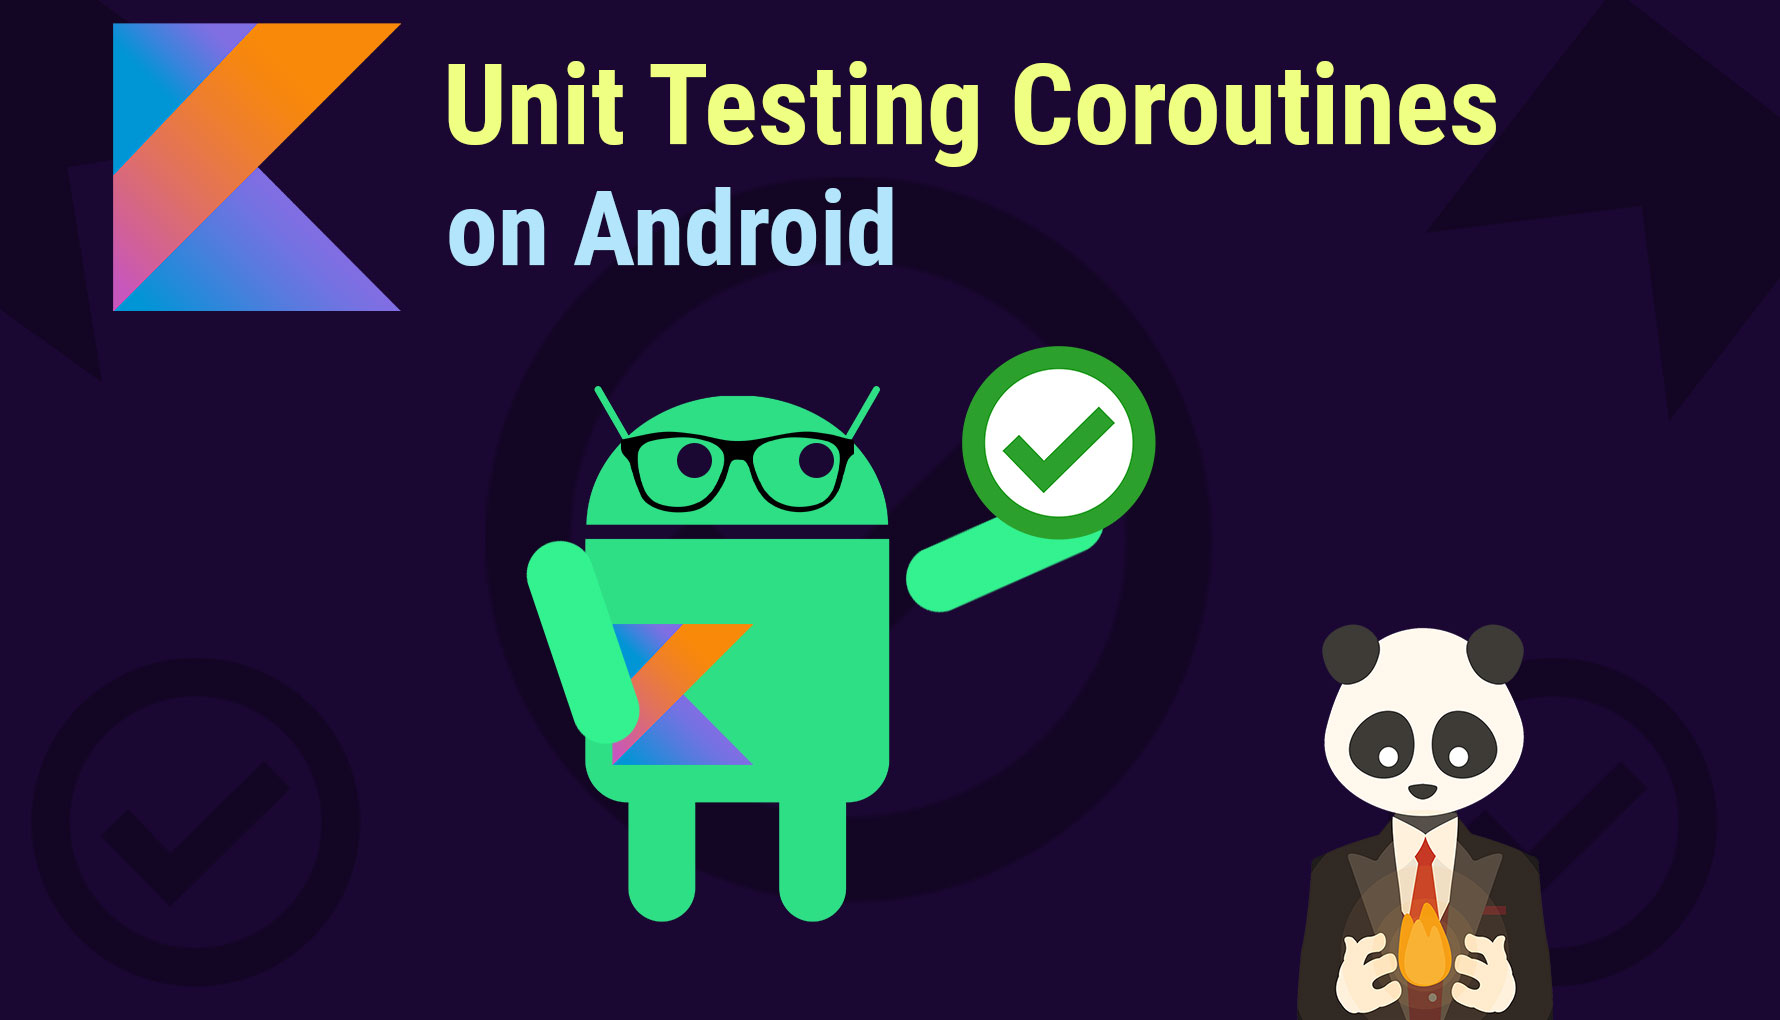 Unit Testing Coroutines on Android